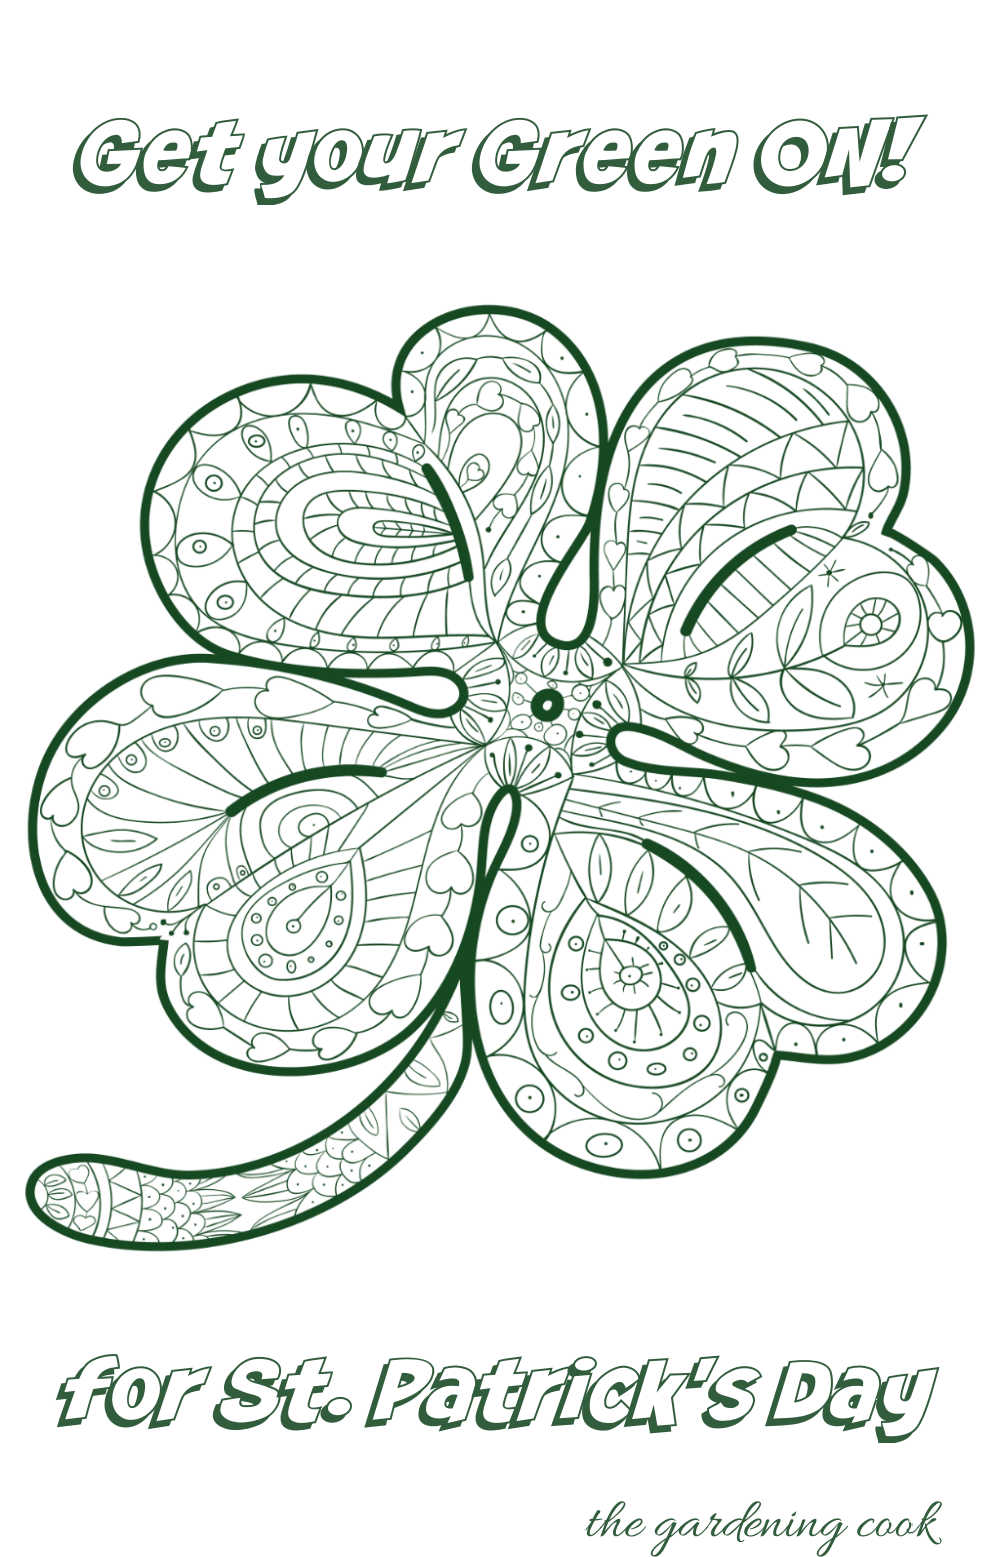 Shamrock colloring sheet